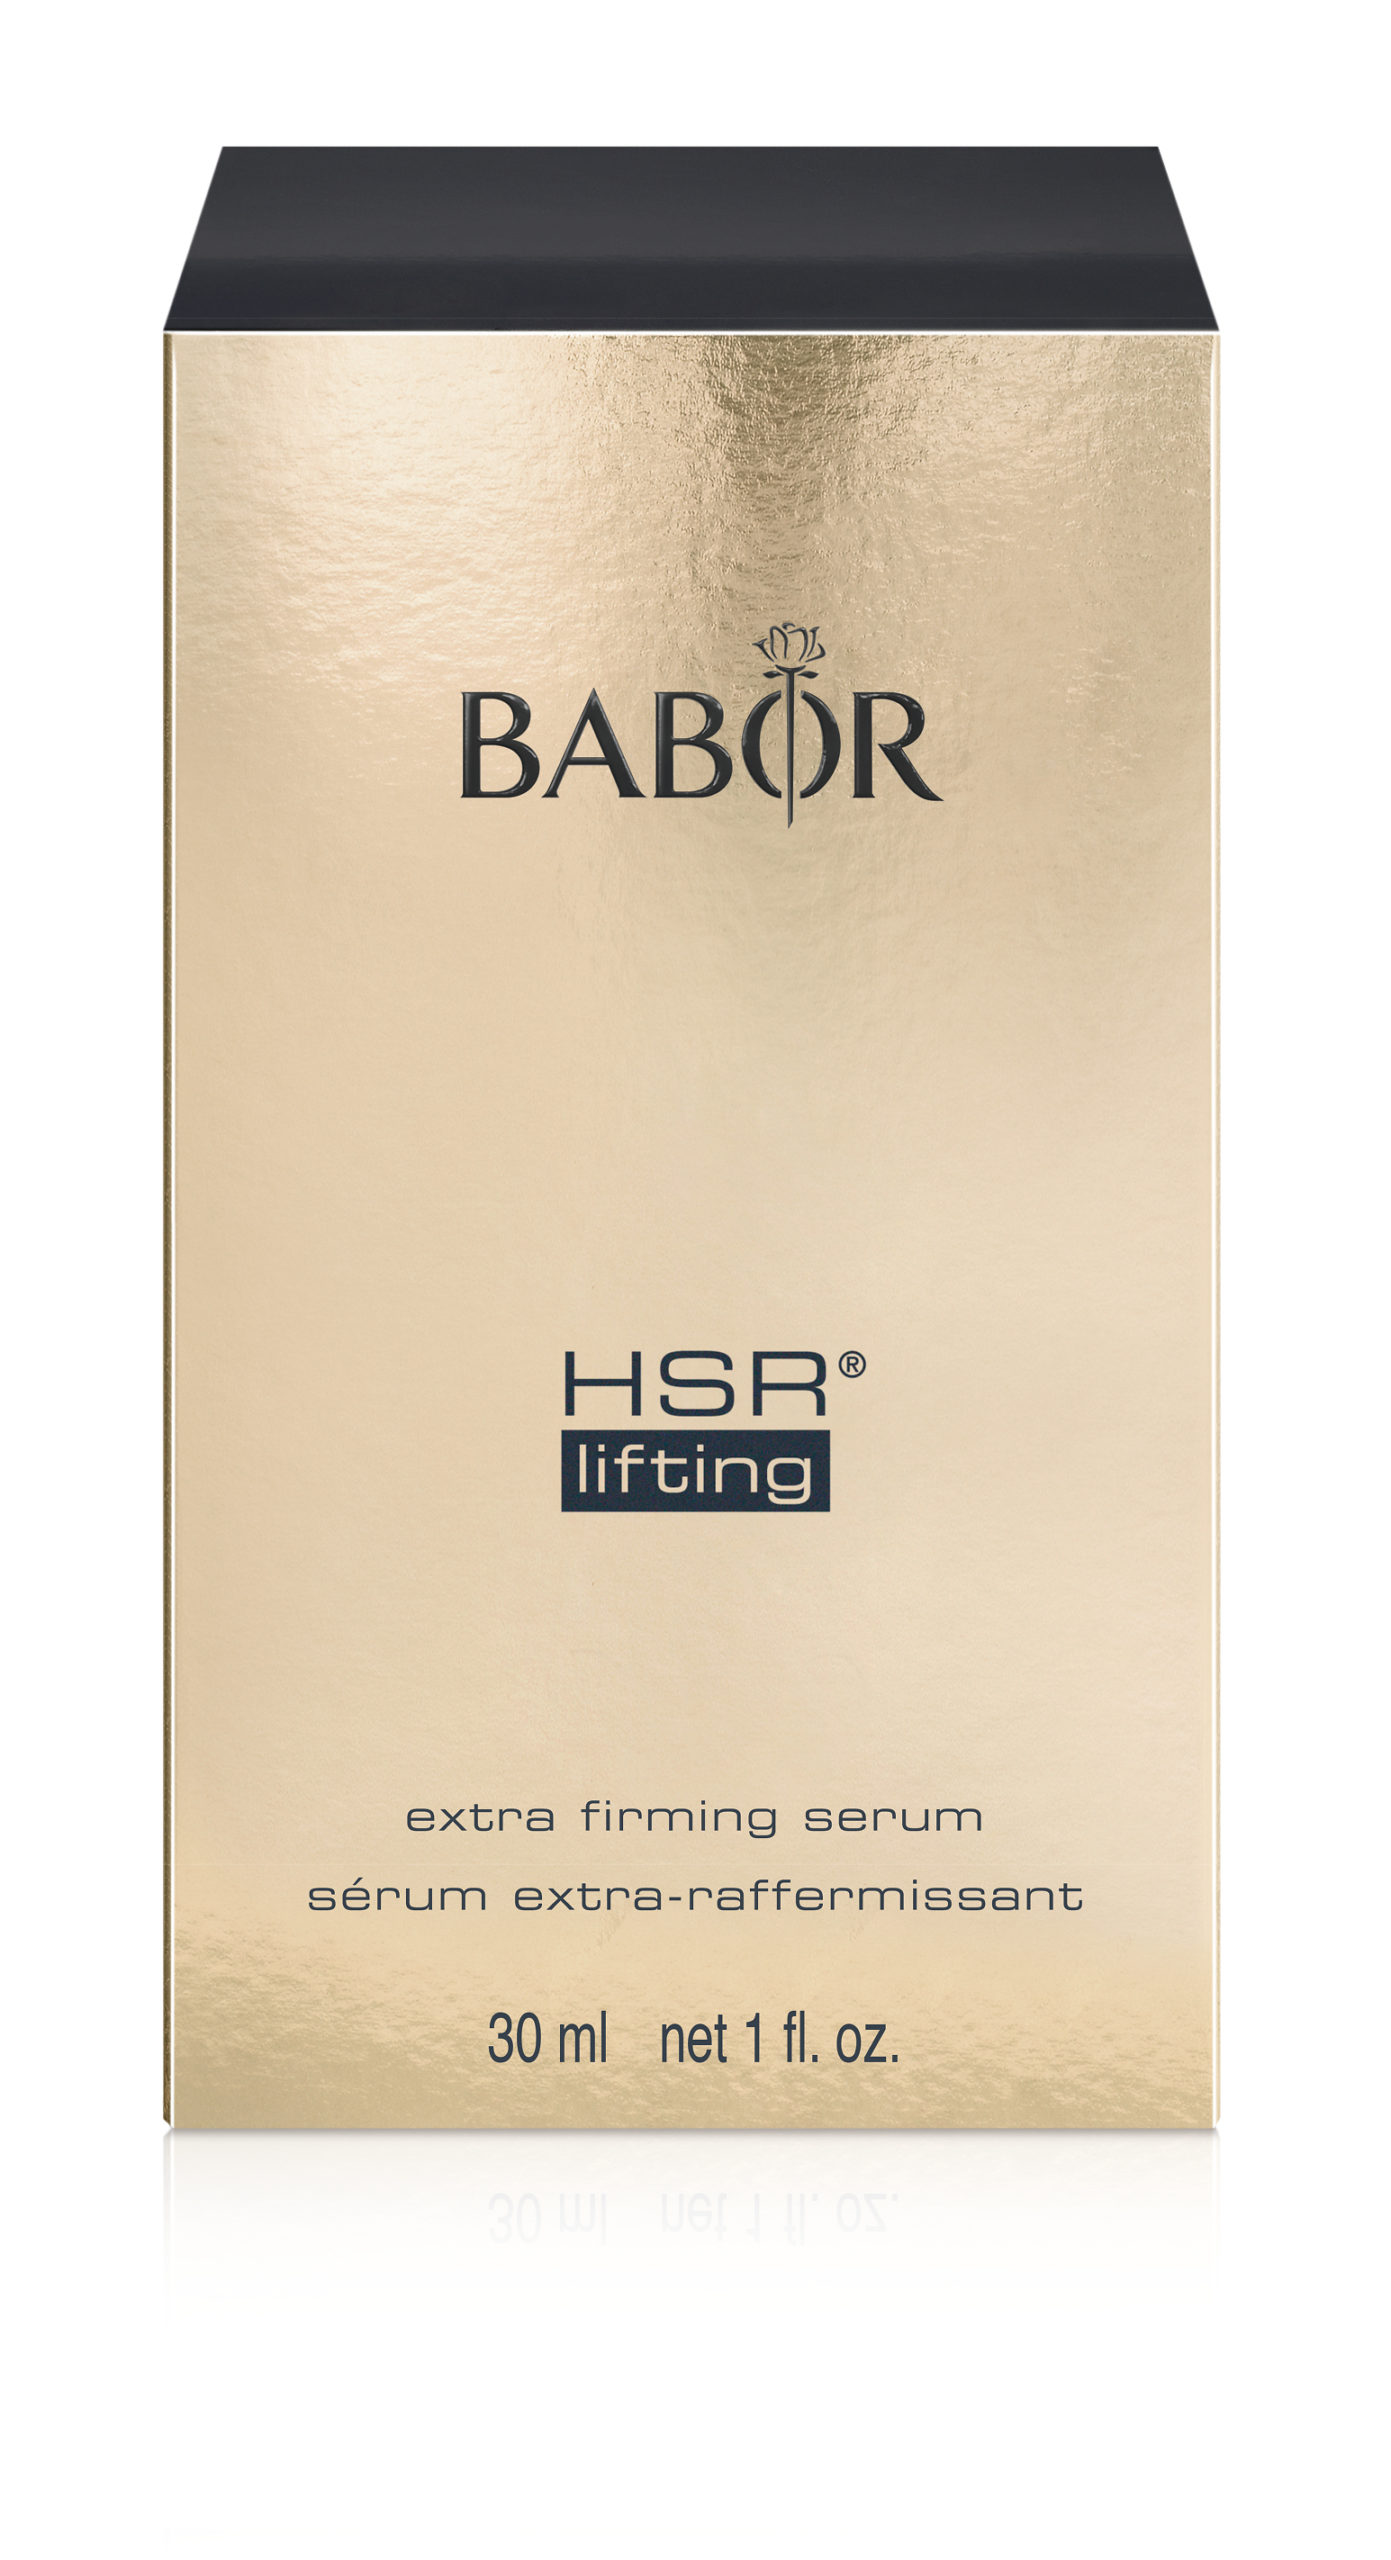 HSR Lifting extra firming serum